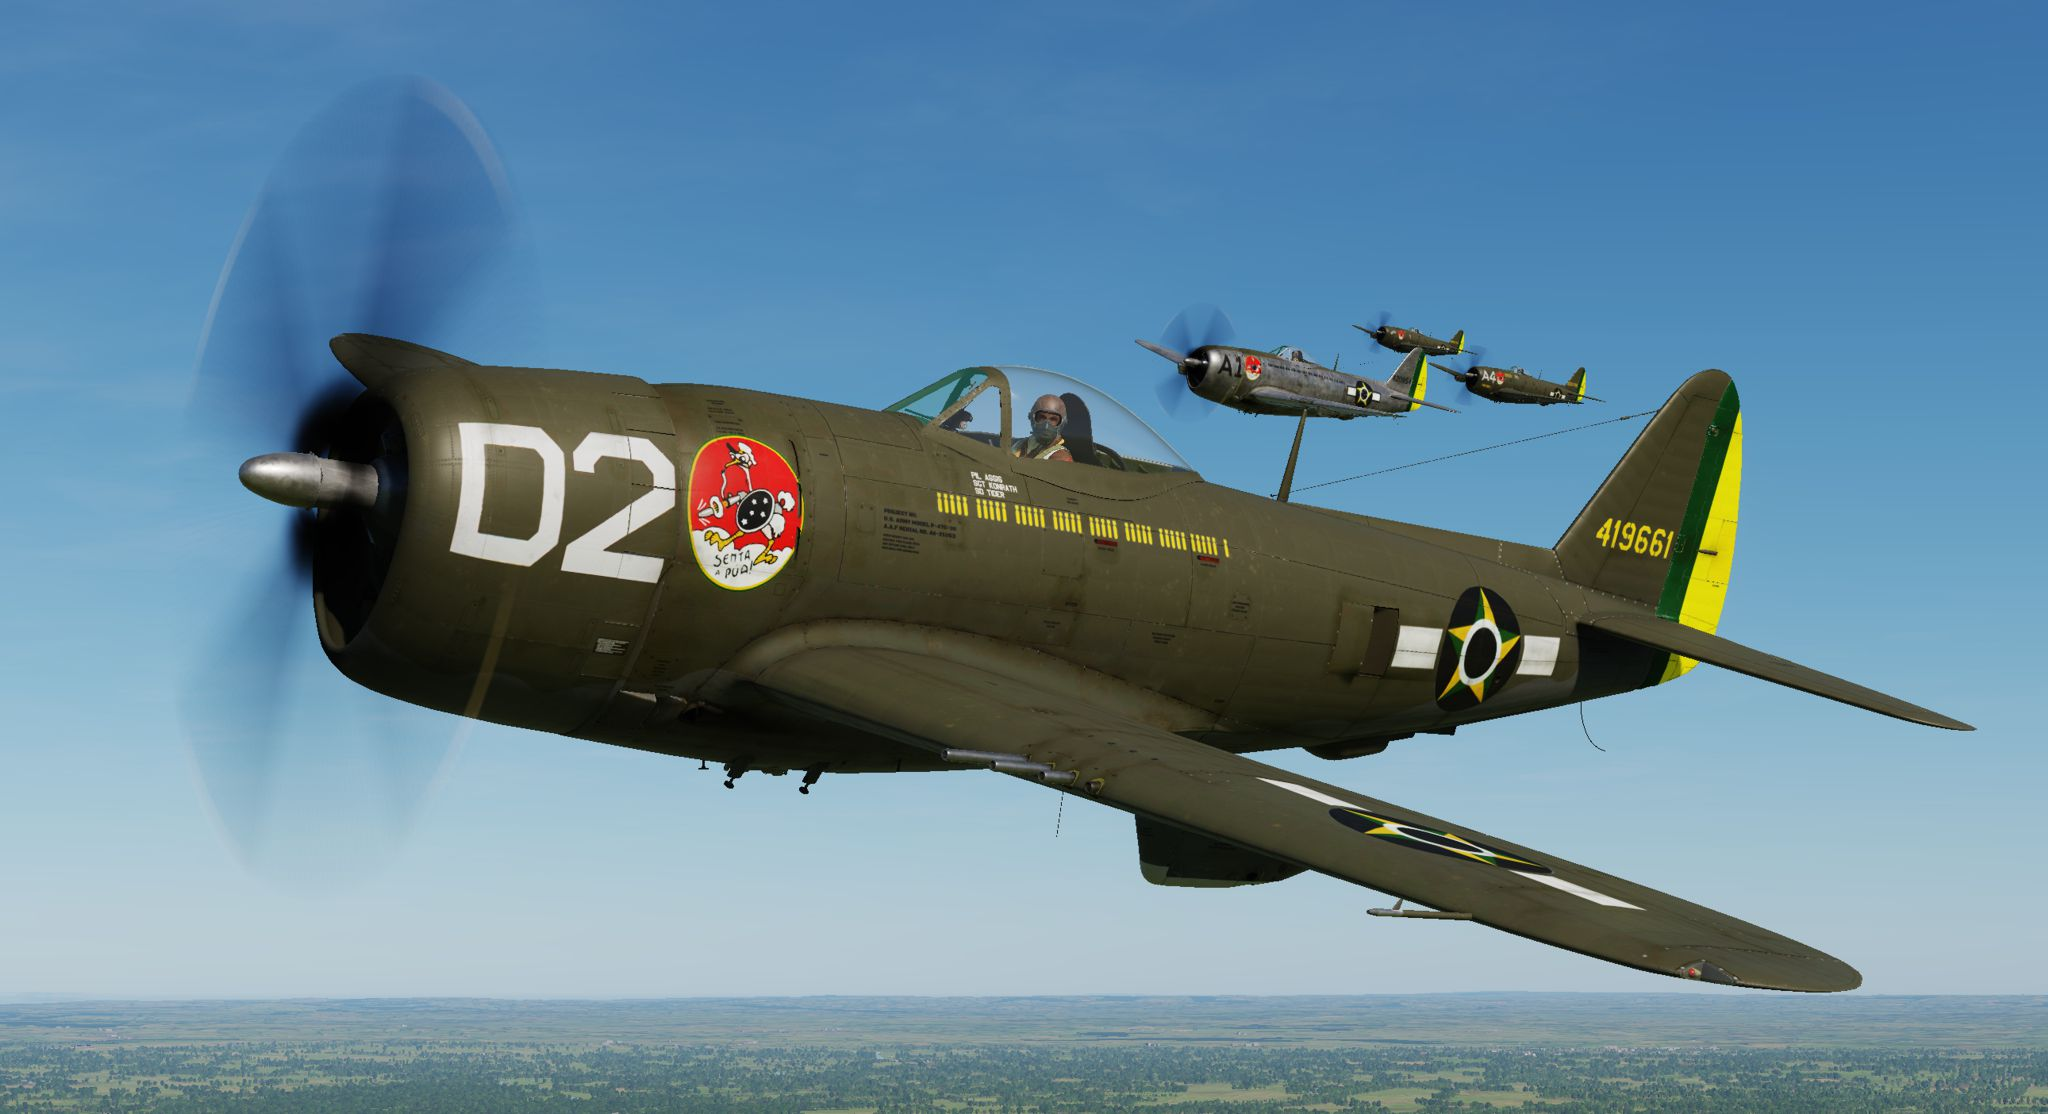 P-47D - 1st Brazilian Ftr Sq-Jambock D2 - 1st Lt. Assis (update vs 2.2)